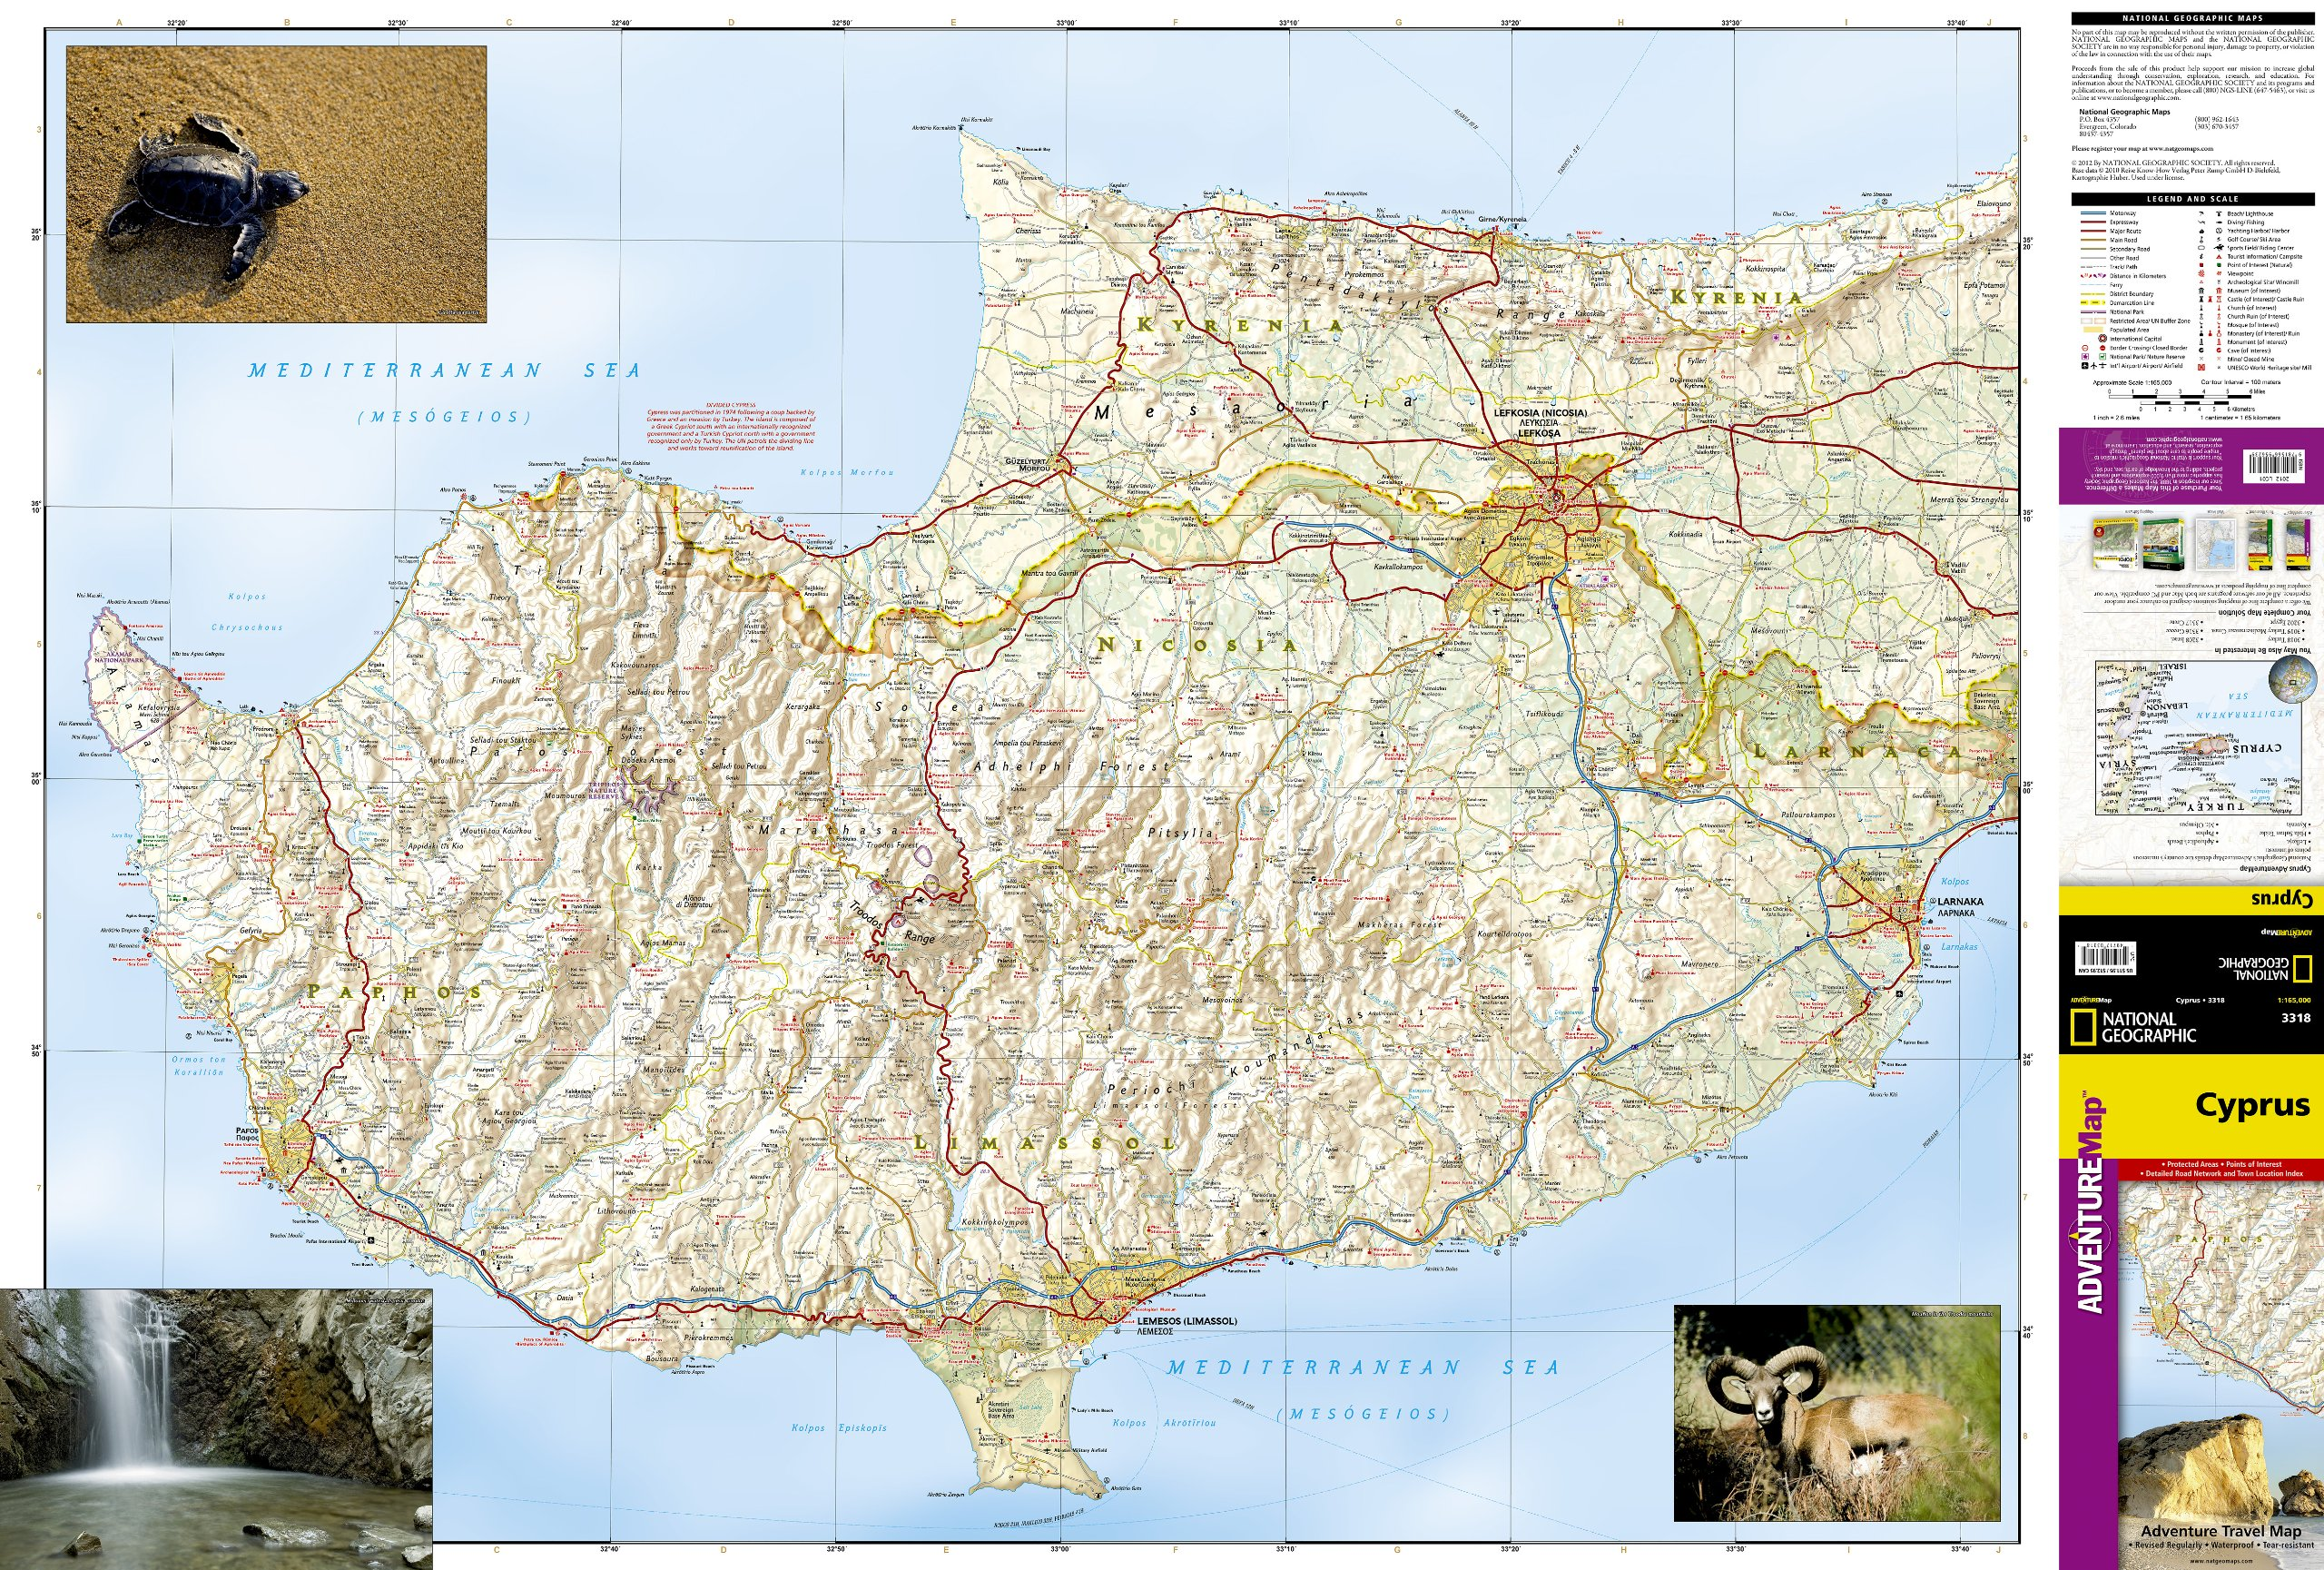 Cyprus national geographic adventure map national geographic maps cyprus national geographic adventure map national geographic maps adventure 9781566956239 amazon books publicscrutiny Gallery